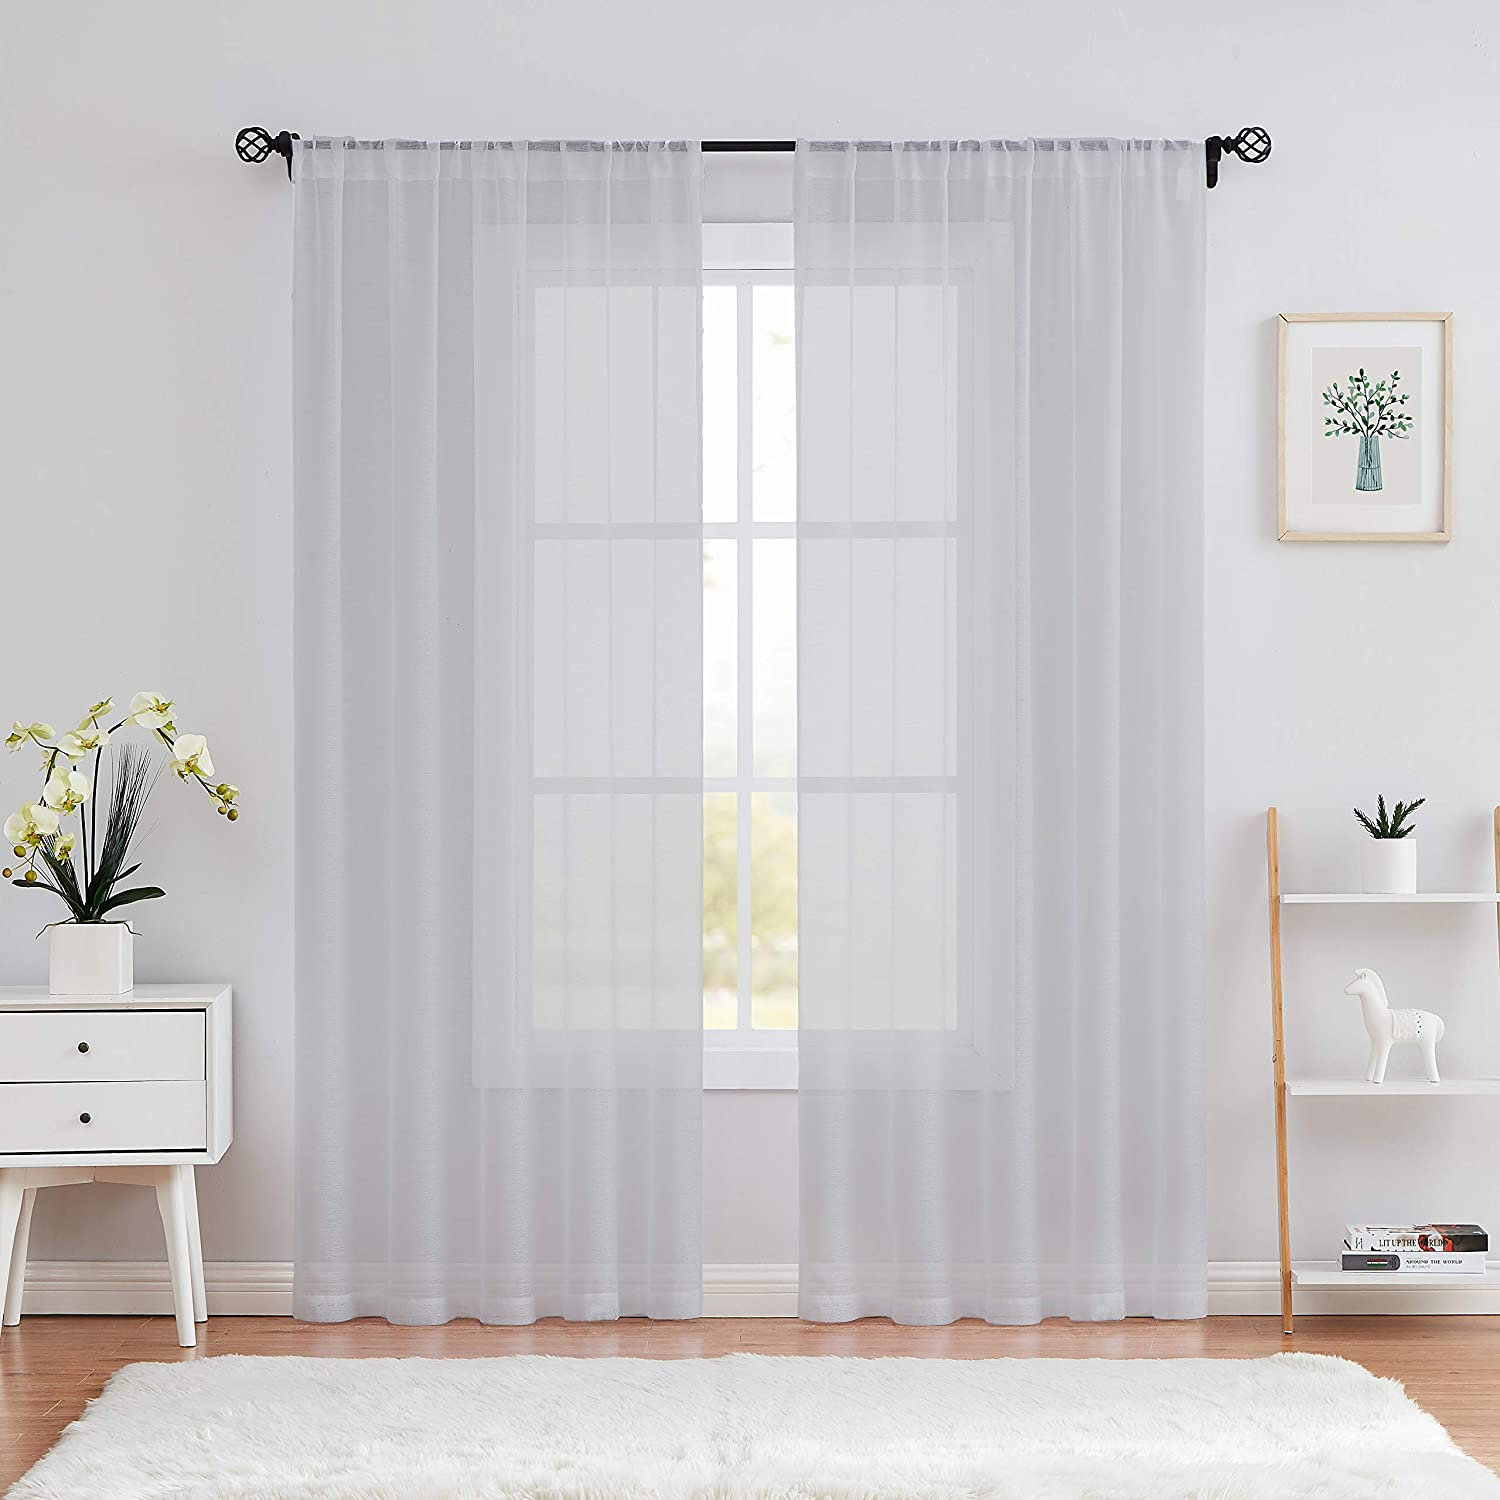 Amzdecor Grey Sheer Window Curtain Panels 108 Inch for Living Room, Linen Texture Rod Pocket Bonus Length Adjusted Iron Tape Voile Curtain for Bedroom, Dining Room 52x108 Inch, Gray, Set of 2 Panels